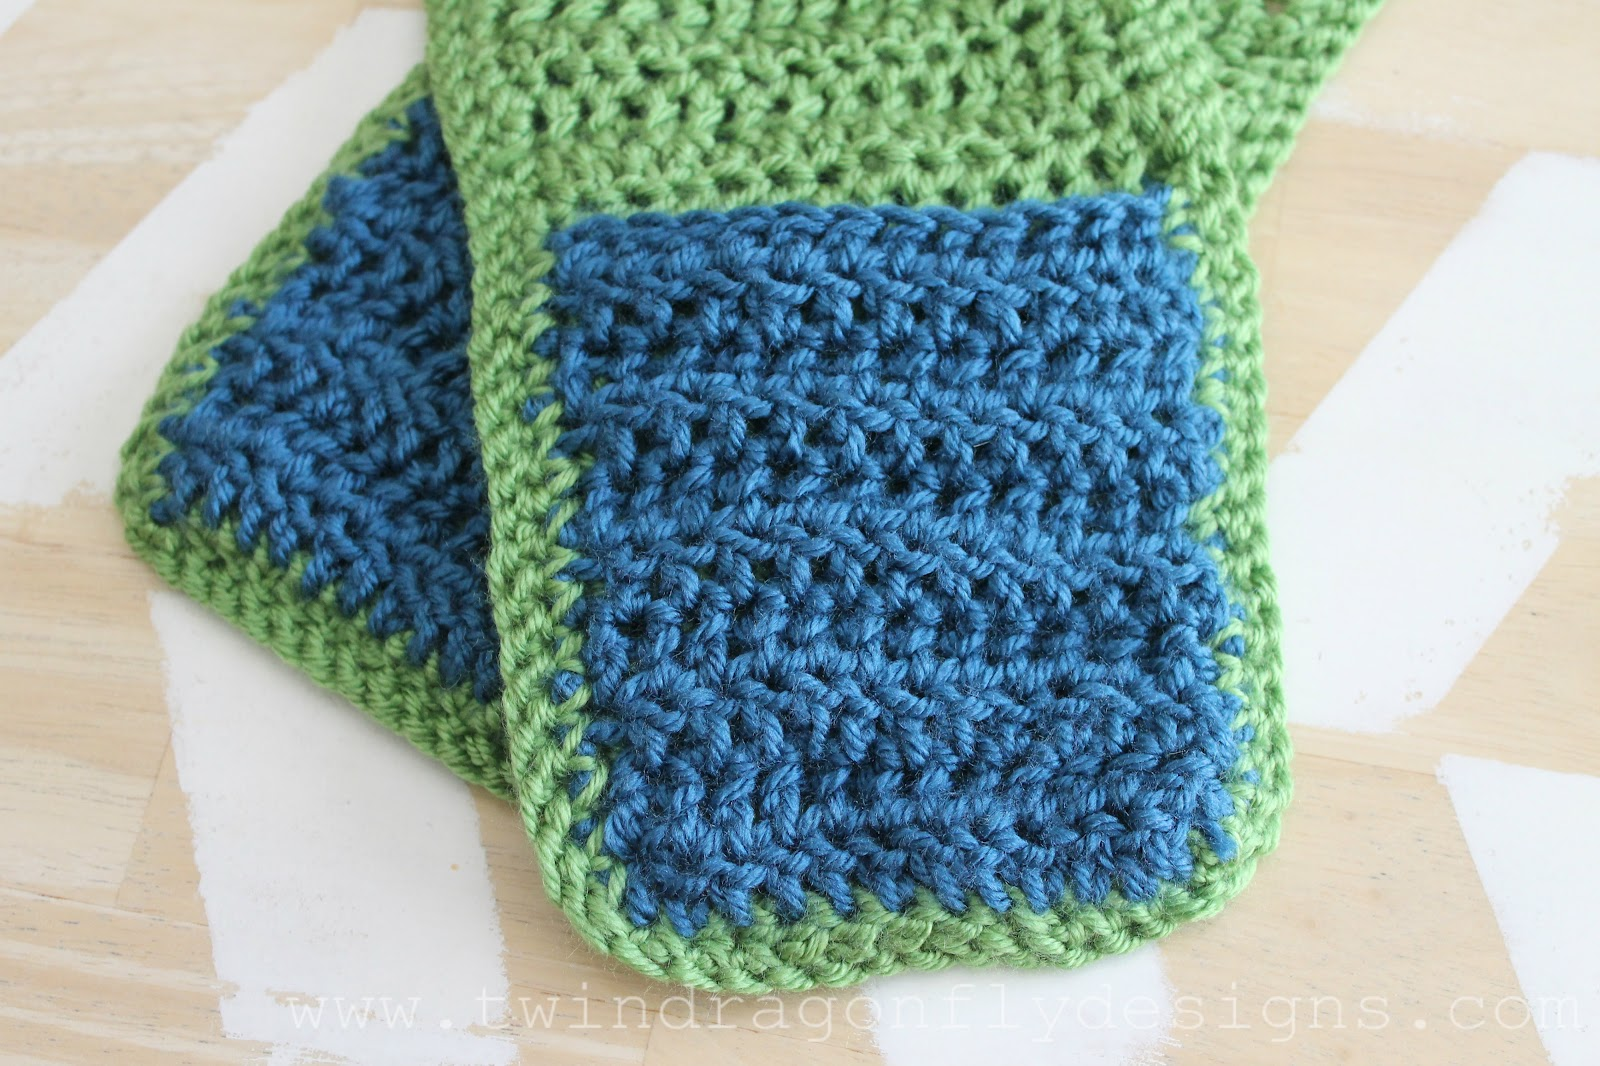 Crochet Hooded Scarf Pattern » Dragonfly Designs